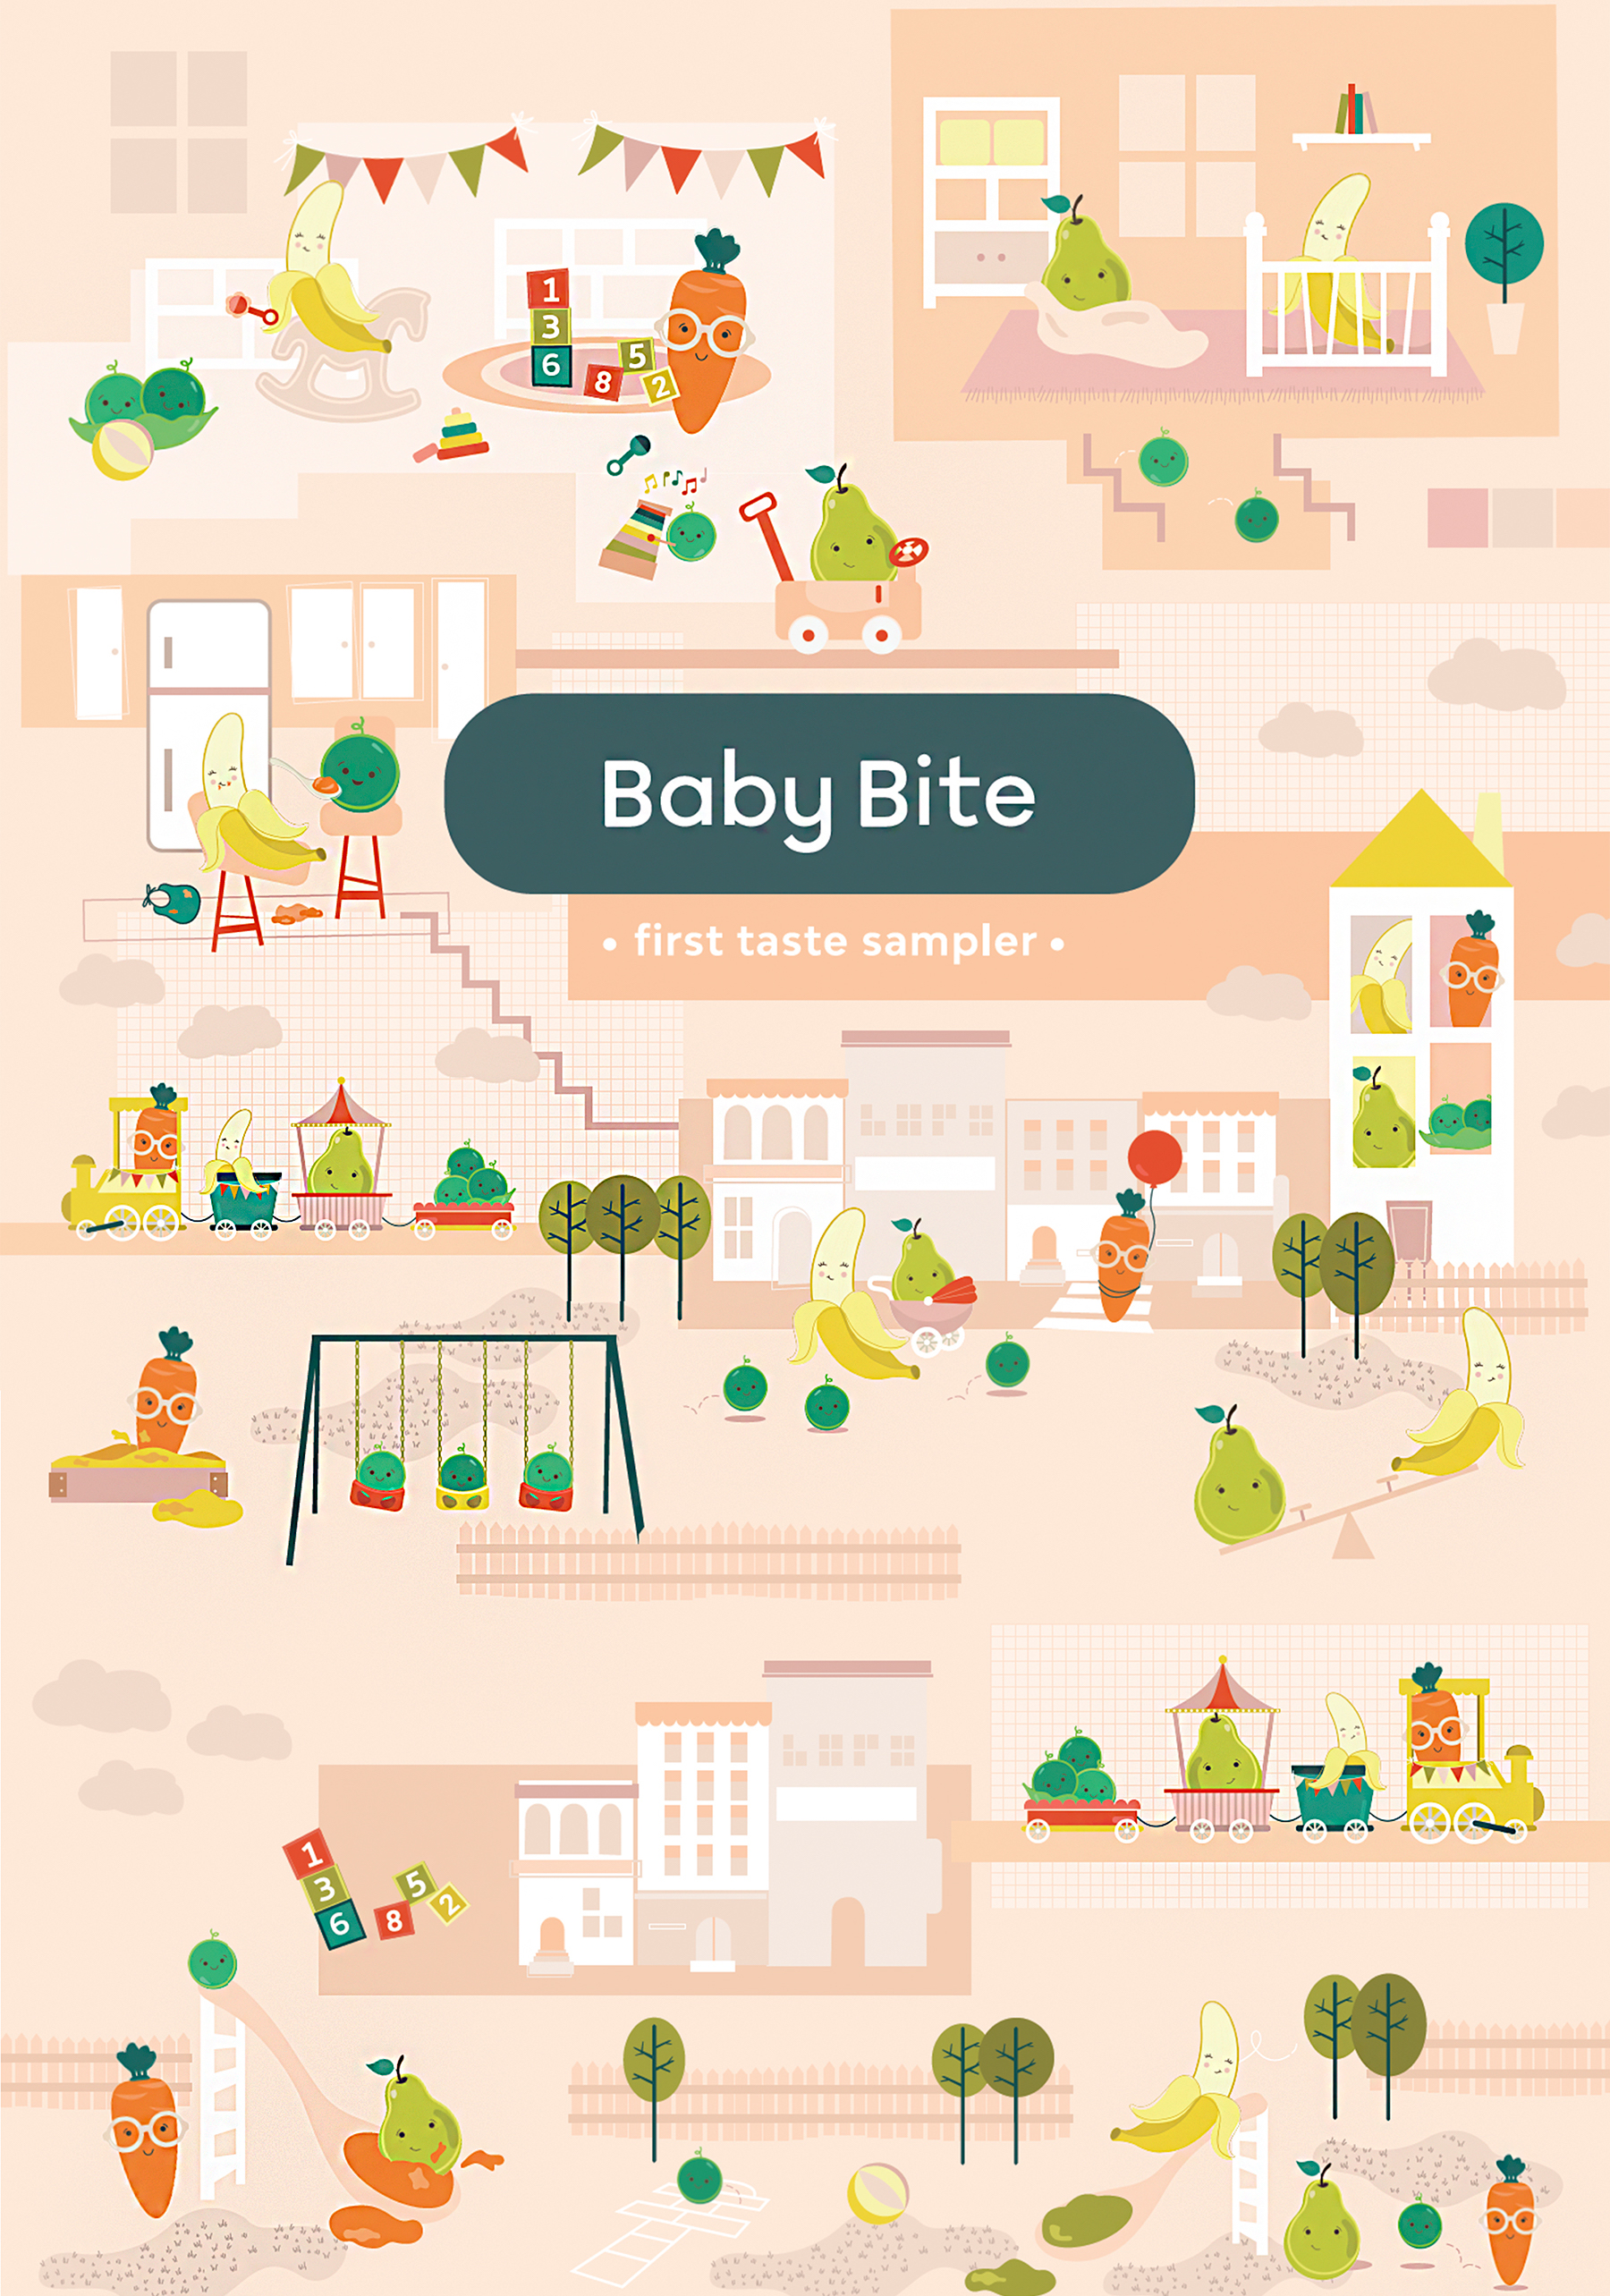 BabyBite illustration.jpg